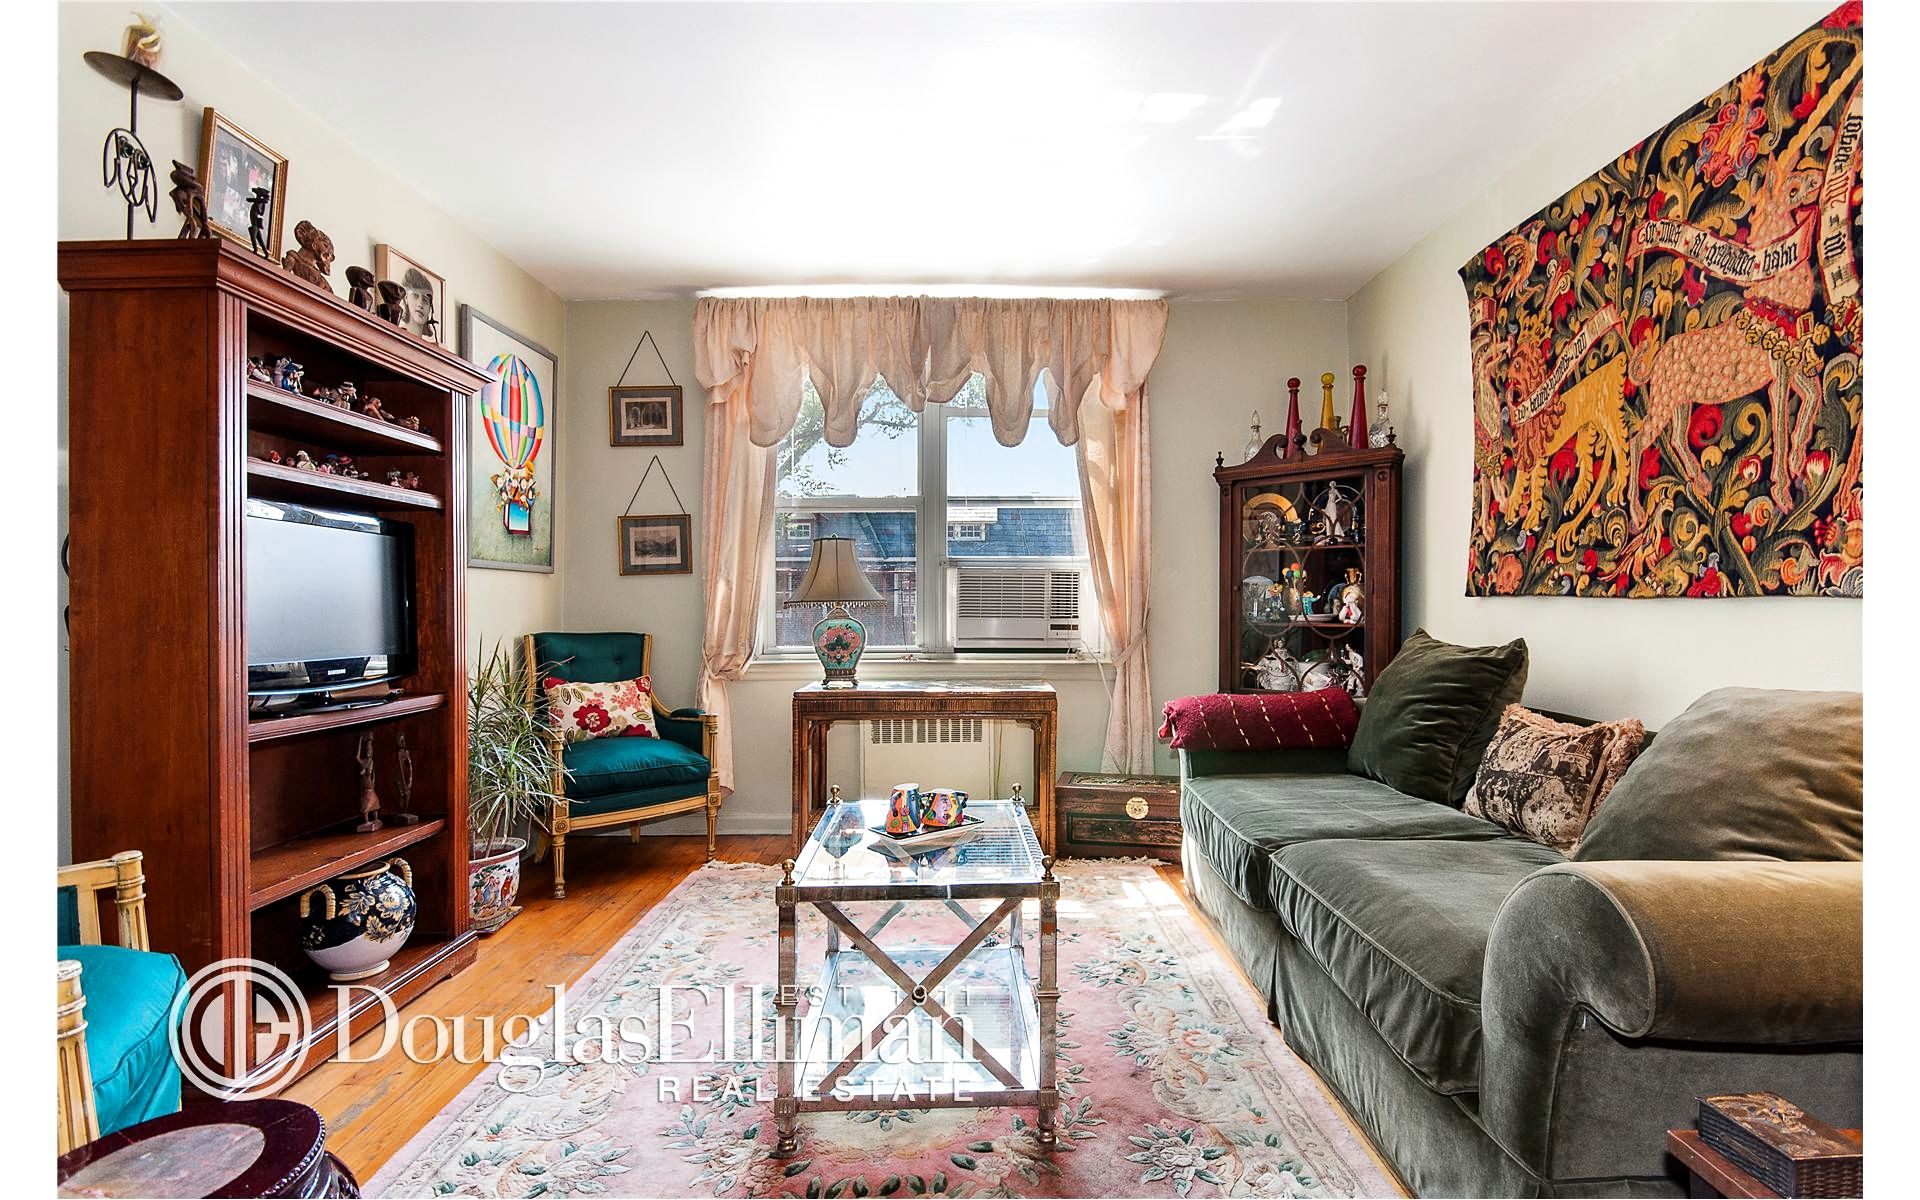 Sunny Hill Gardens, 39-25 51st Street, 1F Photo 0 - ELLIMAN-2148091